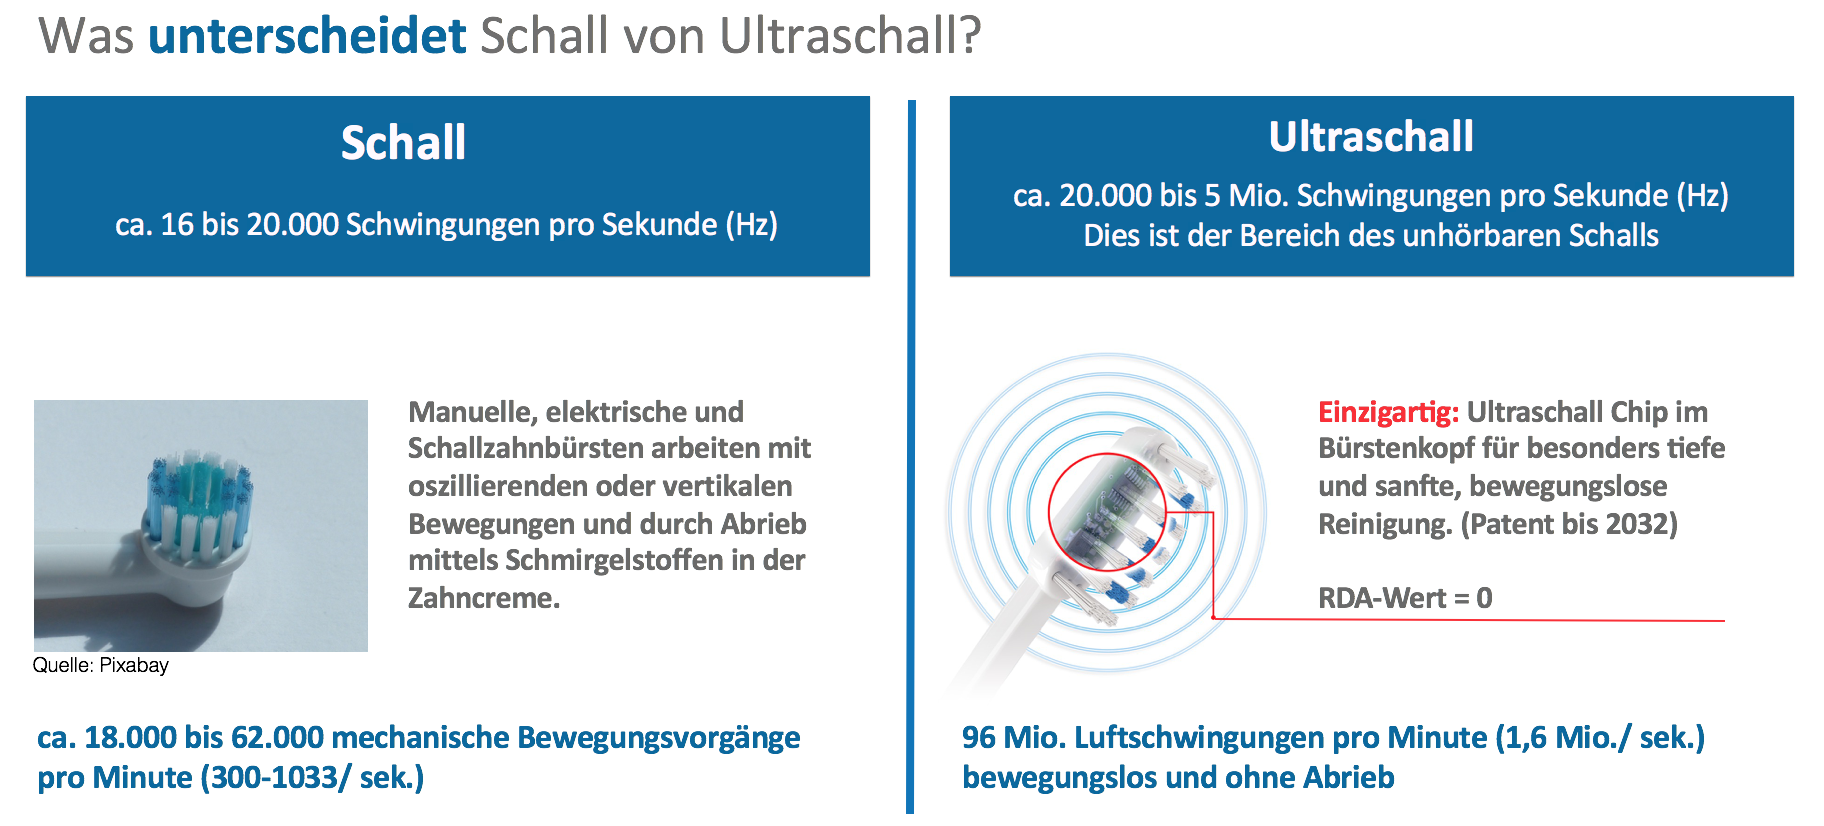 schall vs ultraschall